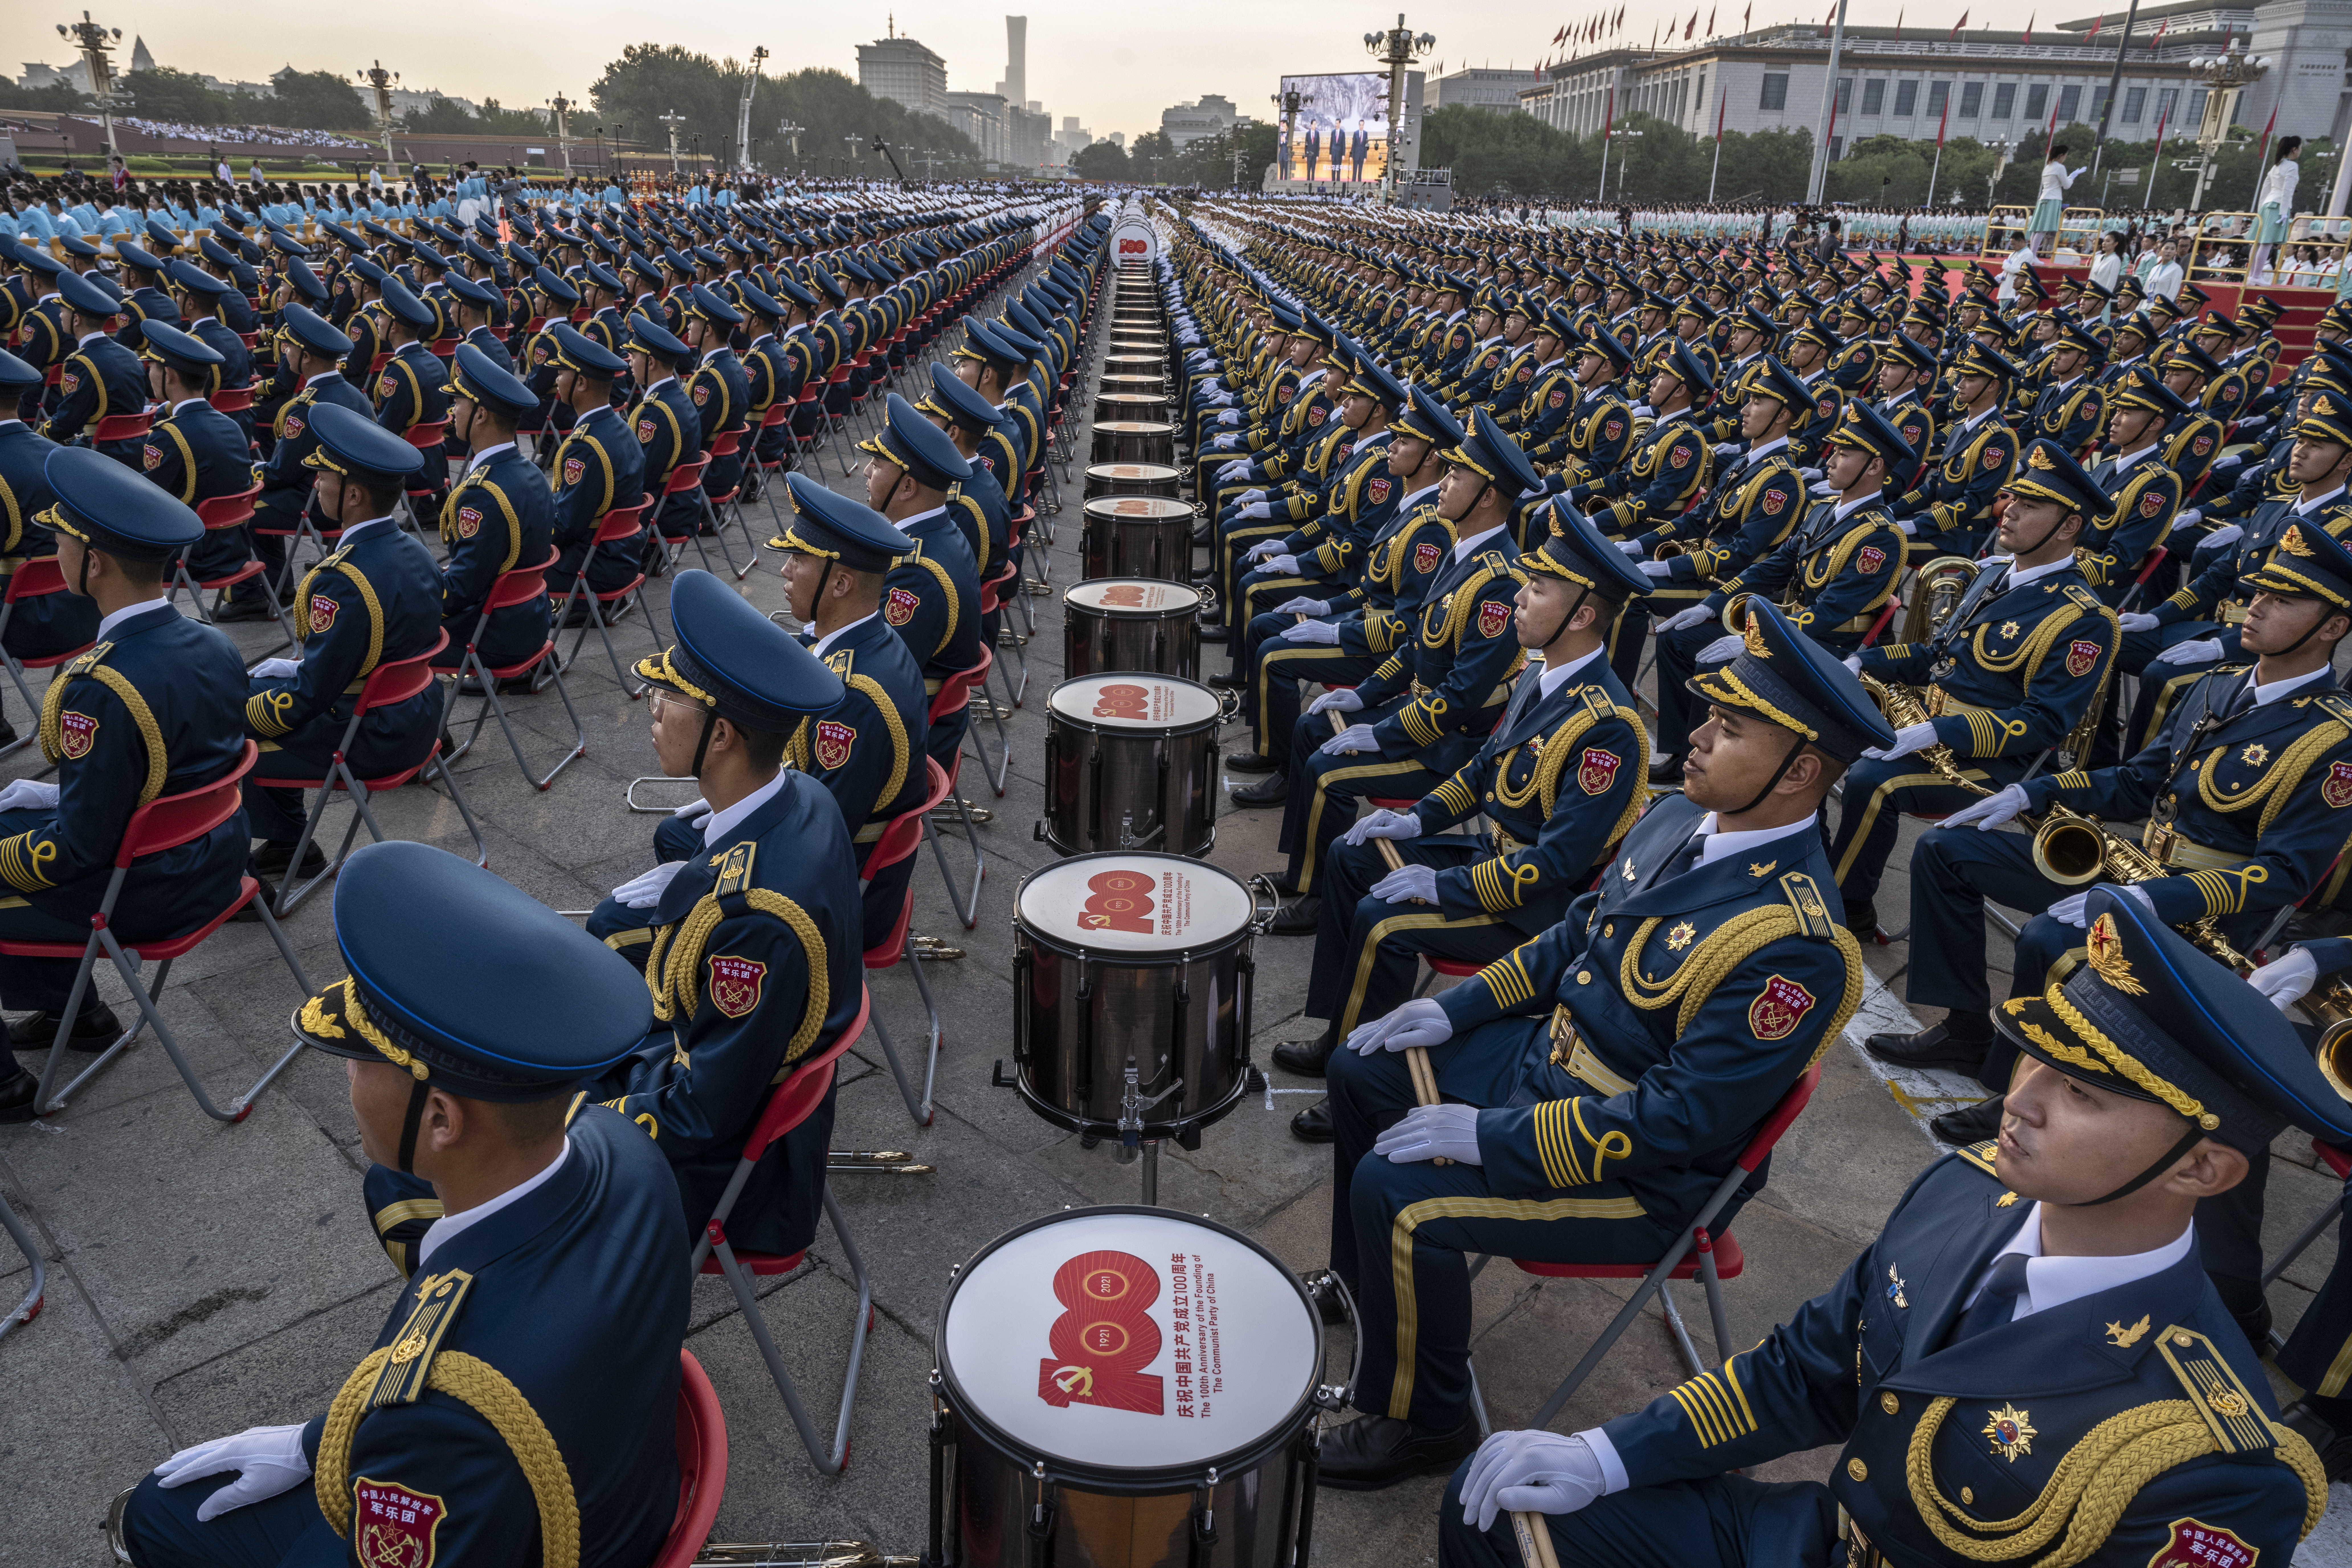 BEIJING, CHINA - JULY 01: Members of a People's Liberation Army ceremonial band sit next to drums with '100' on them at a ceremony marking the 100th anniversary of the Communist Party on July 1, 2021 at Tiananmen Square in Beijing, China. (Photo by Kevin Frayer/Getty Images)